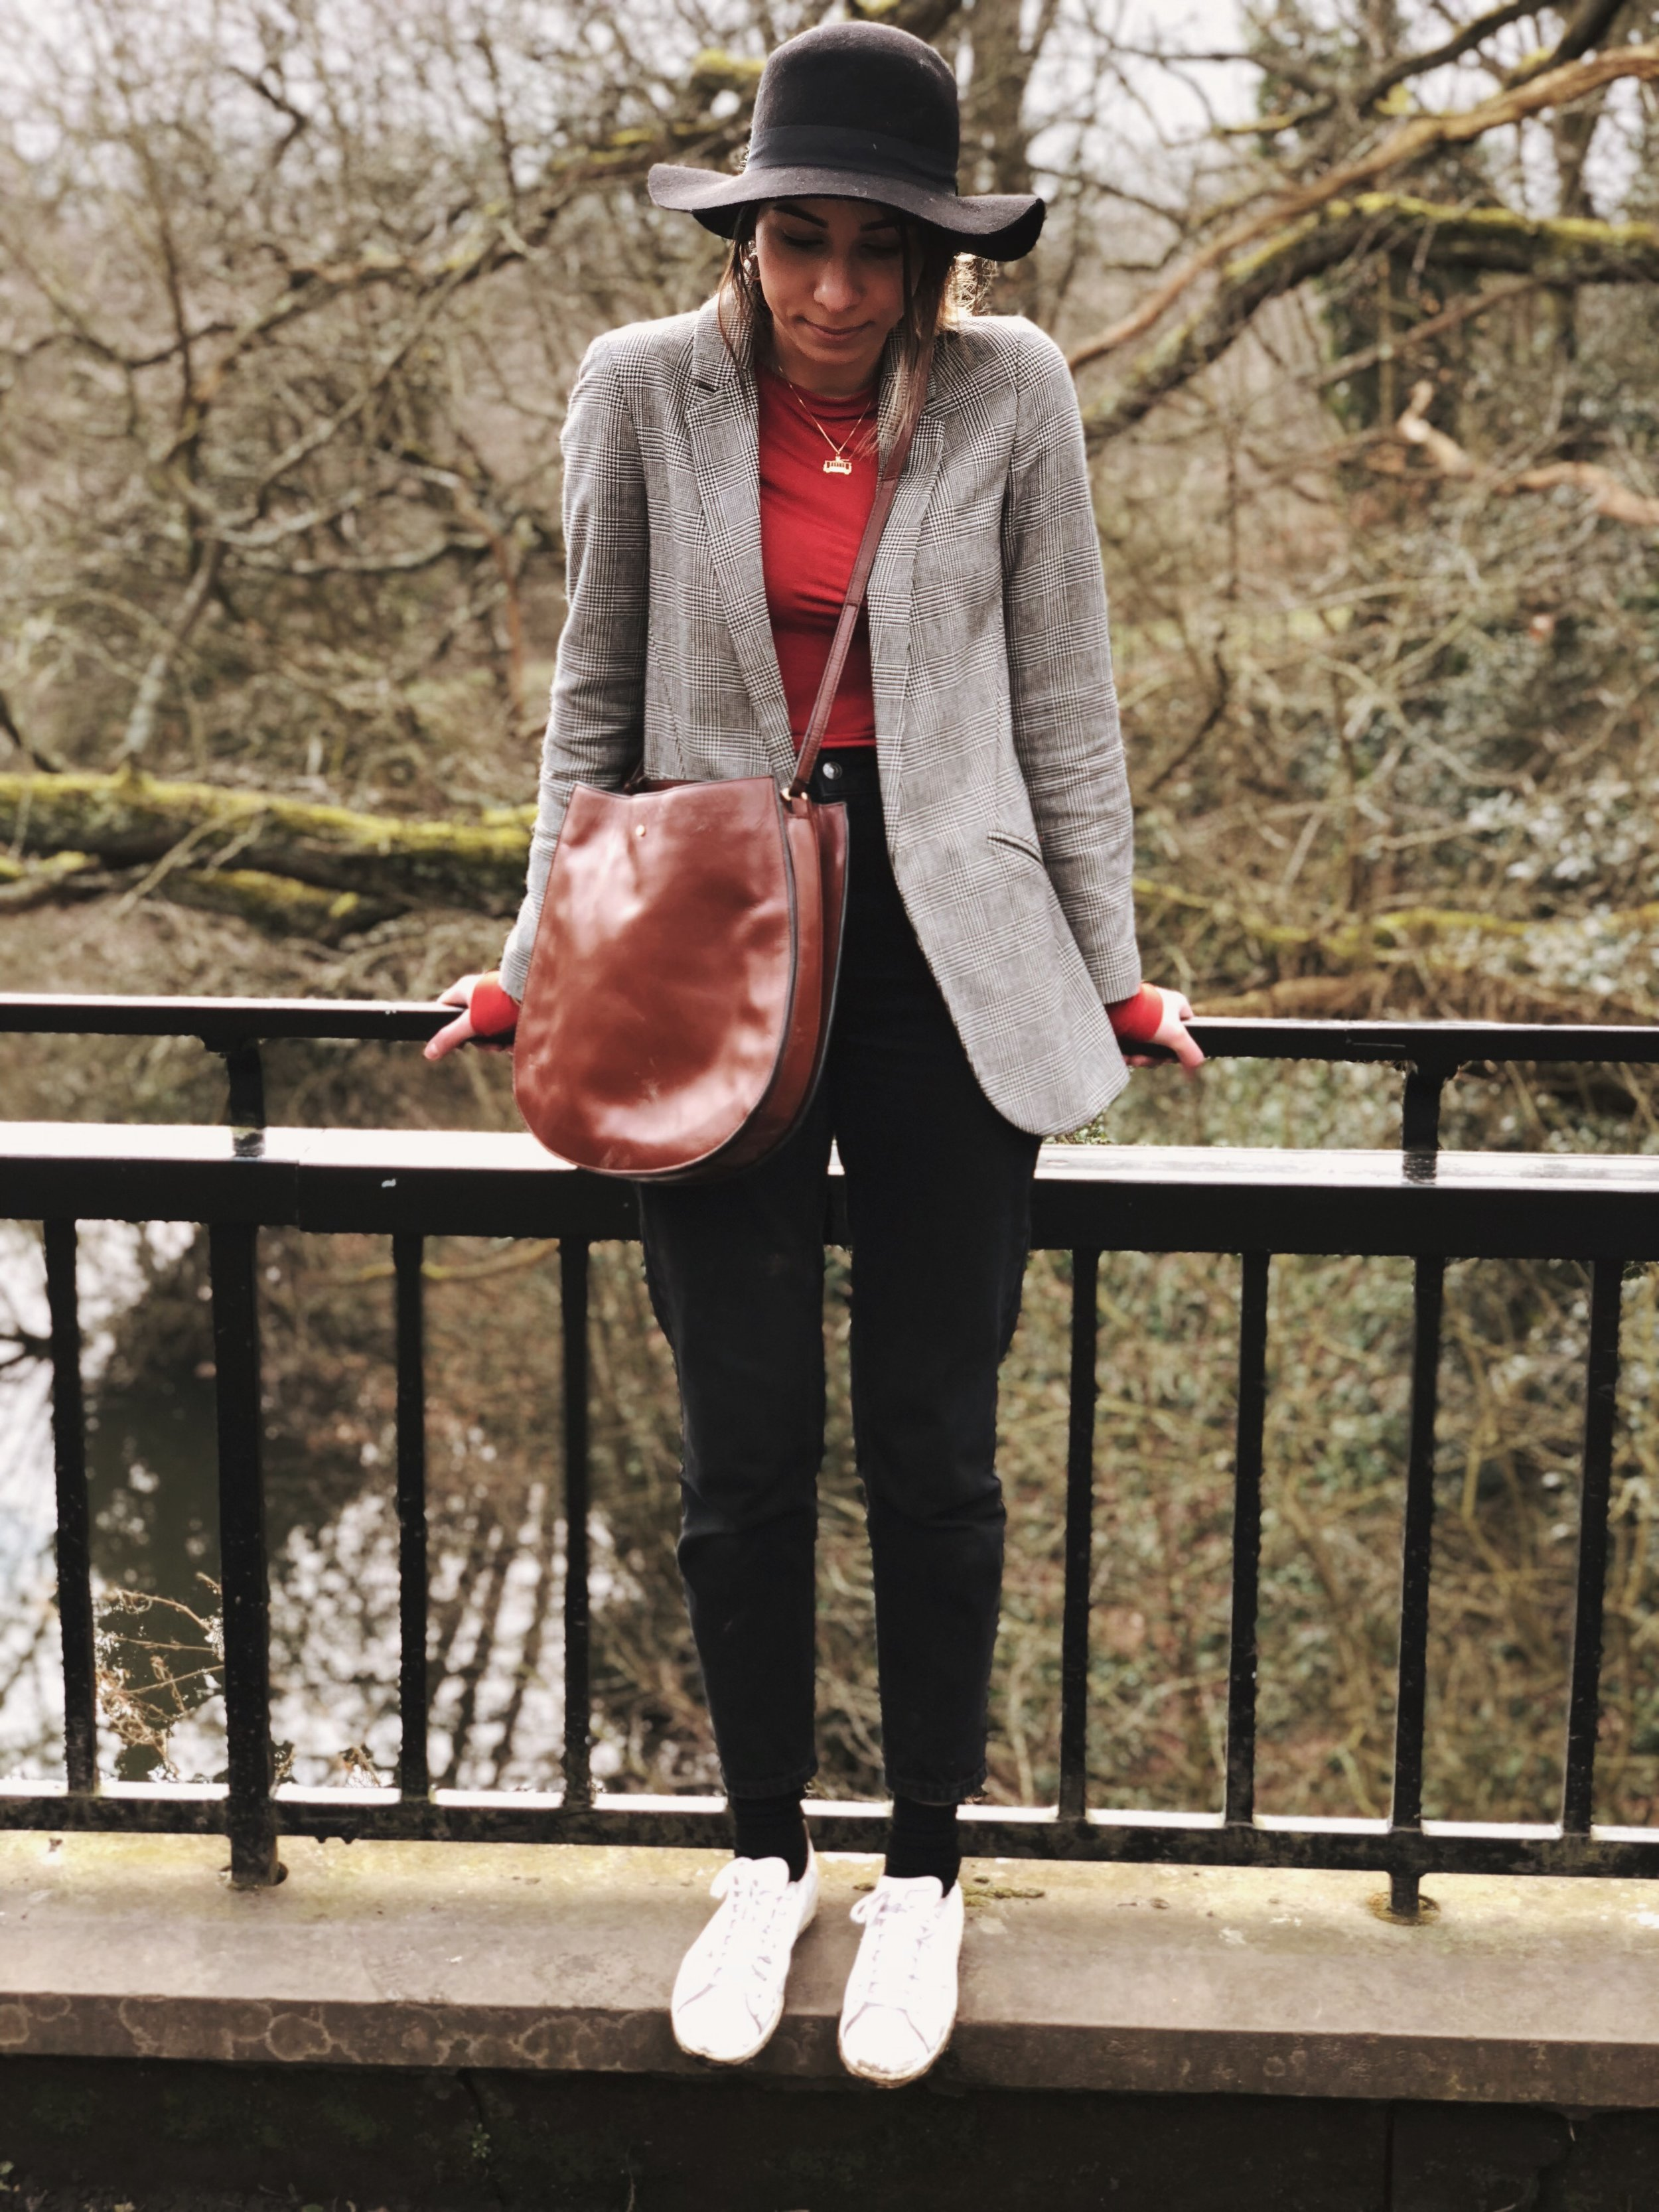 a walk in the park  - For a casual look on a mild spring day I put together my Topshop long blazer over a red long sleeved top from H&M and Topshop Mom jeans in black. I finished this off with a hat from ASOS, tan bag from Jaeger and my trusty Stan Smiths..